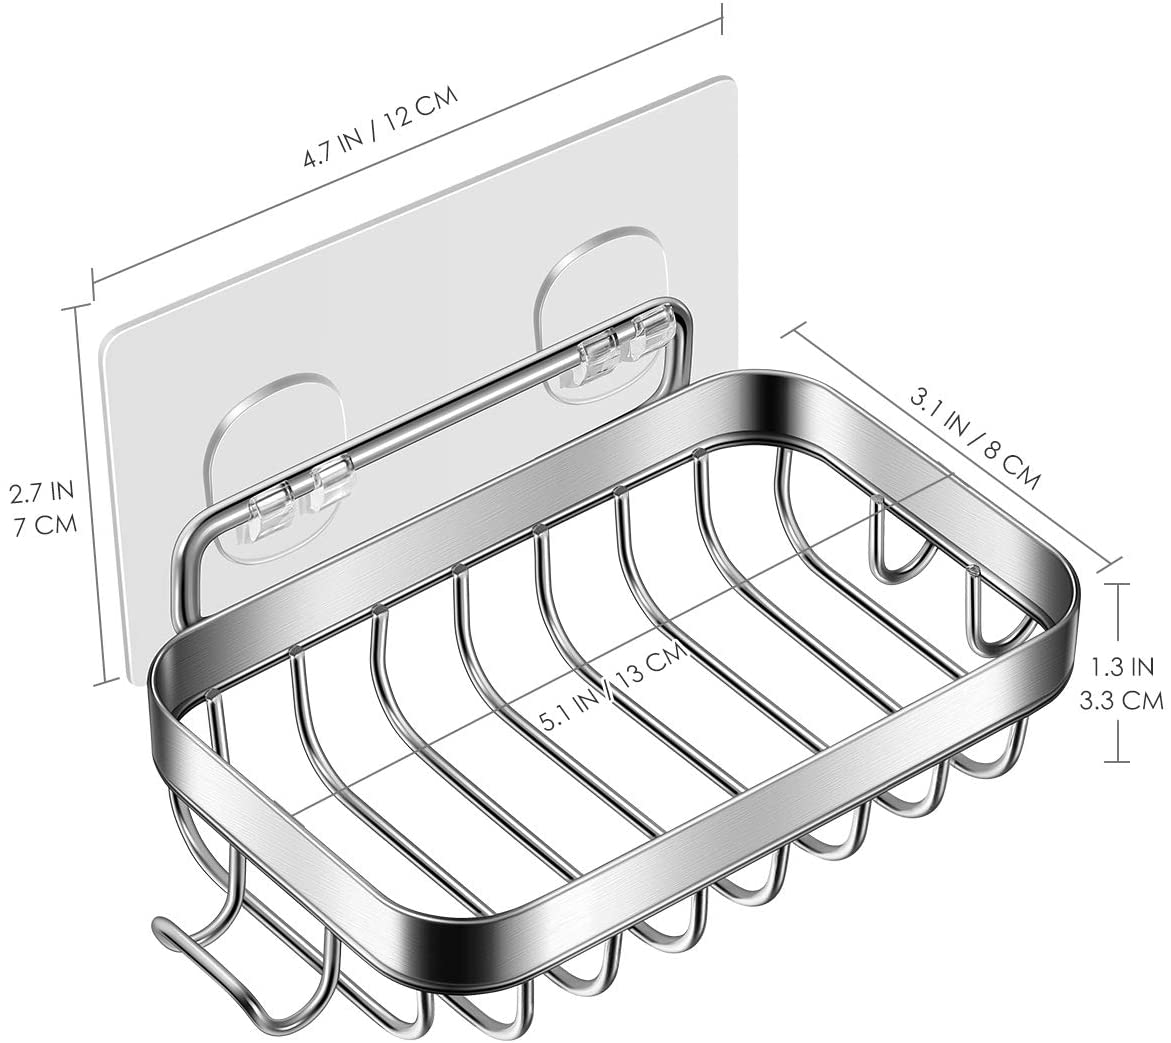 Soap Dish, Soap Dish for Shower with Hook, 304 Stainless Steel Wall Mounted Bar Soap Holder